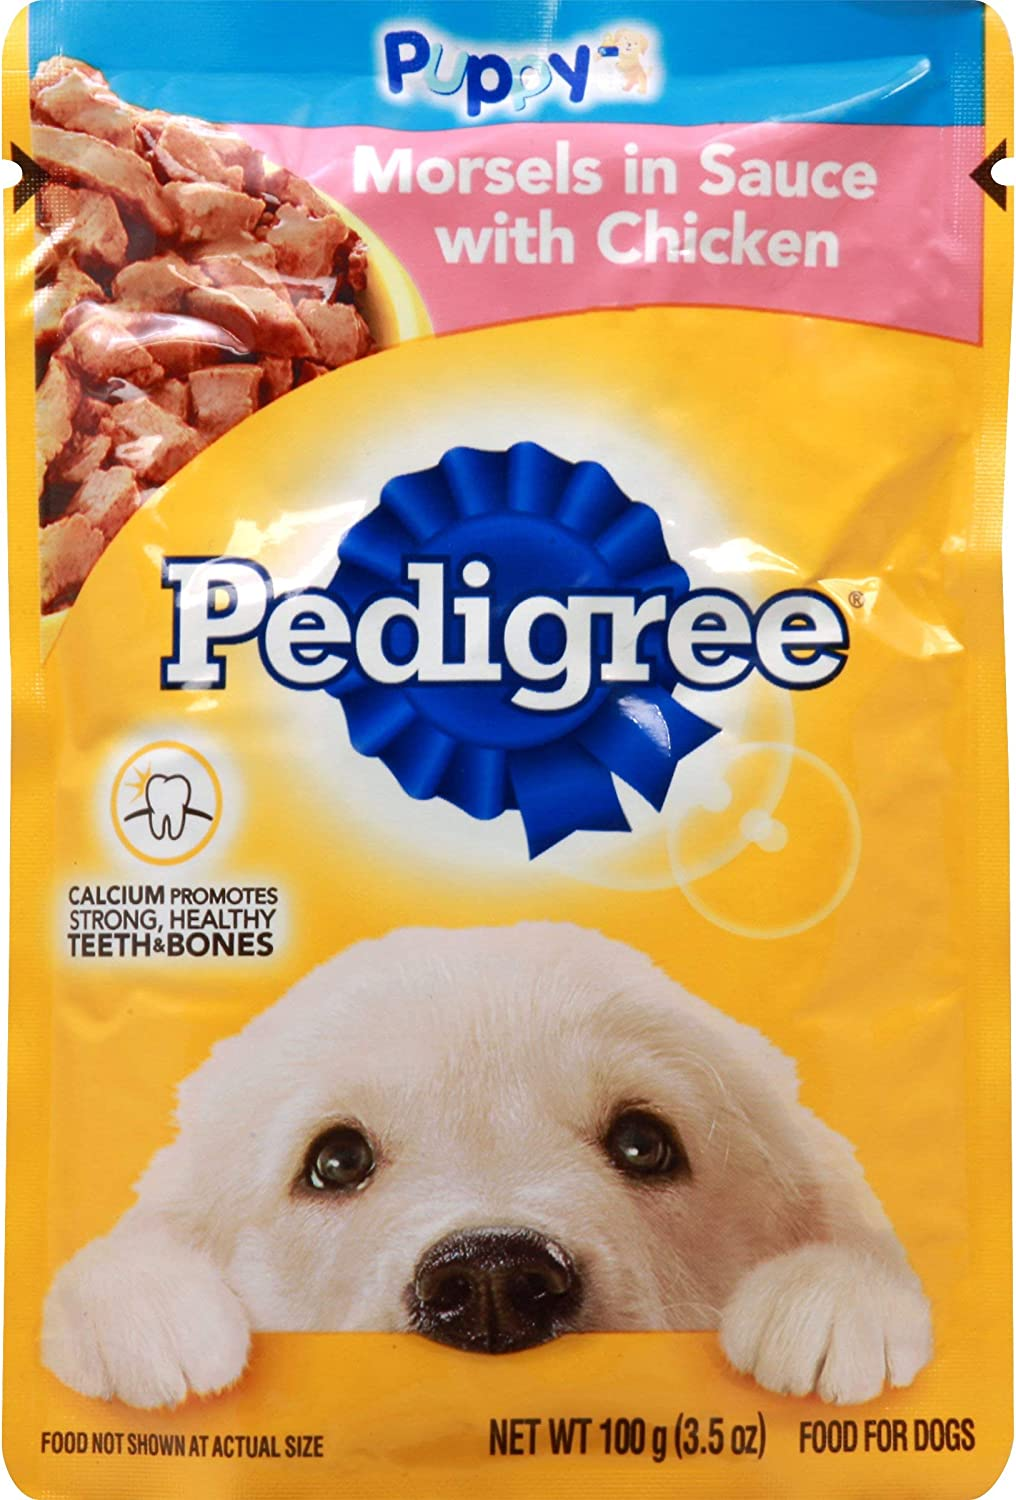 PEDIGREE Chicken Wet Dog Food Morsel in Sauce 3.5 OZ - 0023100119051